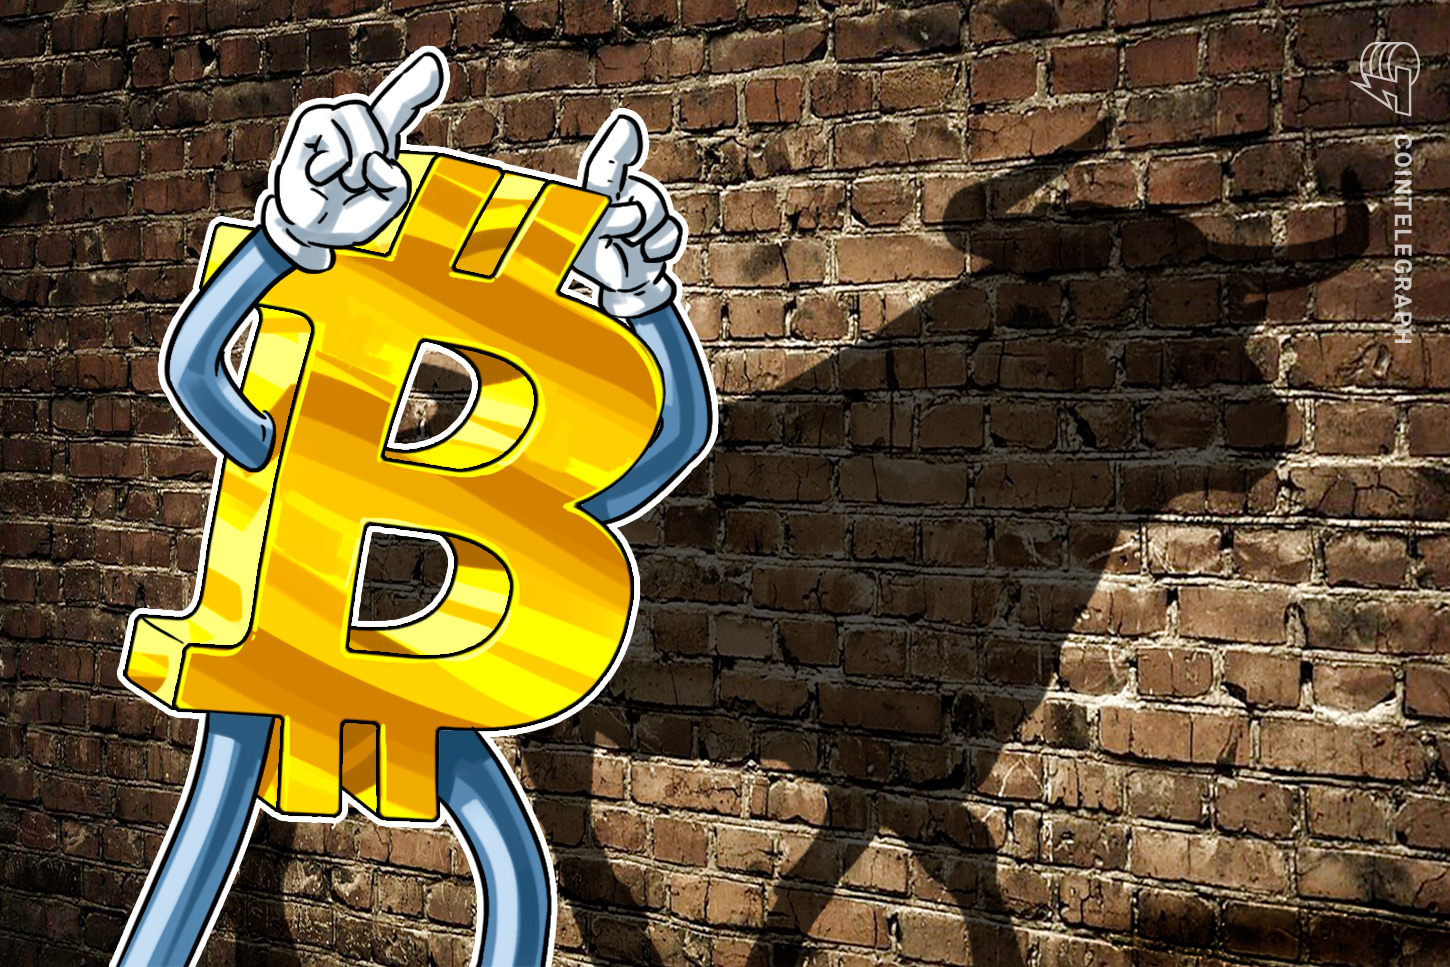 Bitcoin bulls make a run on $45K after Twitter debuts crypto tipping